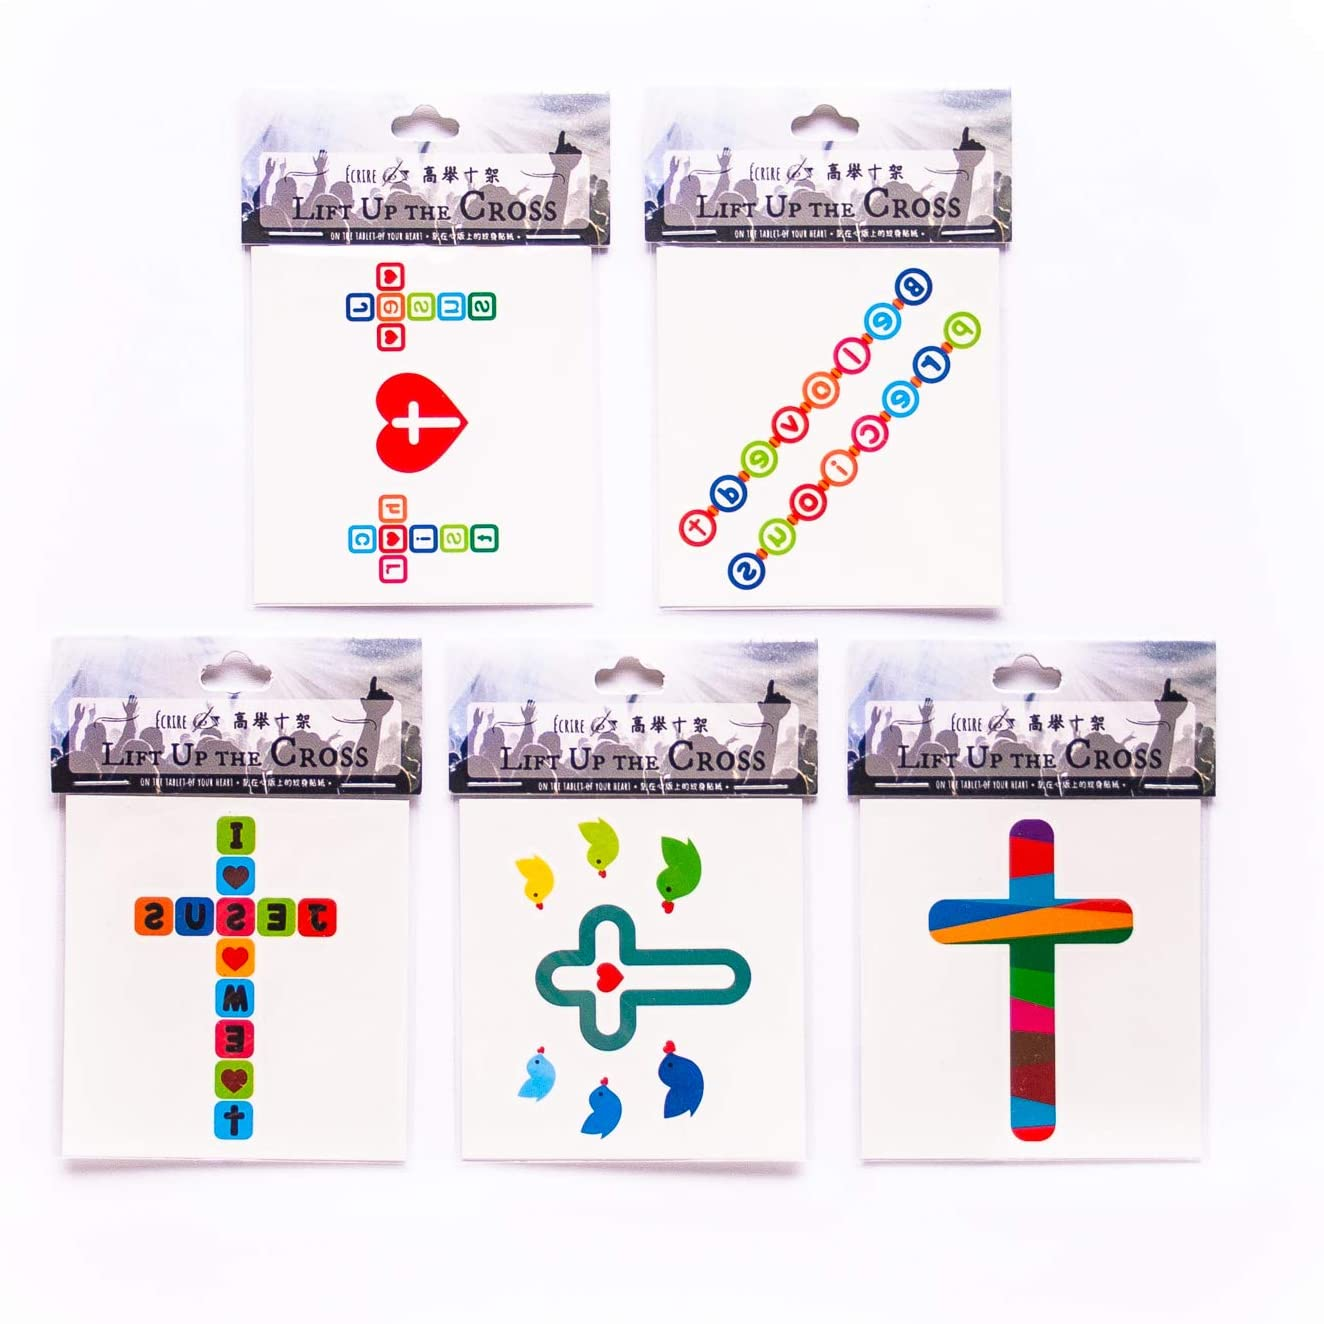 labQ Christian Inspirational Gifts, Baptism Party Ideas, VSCO Girl, Set of 5 Temporary Tattoos, 5 Unique Designs with Cross, Rainbow, Birds and Inspirational Message, Novelty Jewelry, Body Arts, Safe